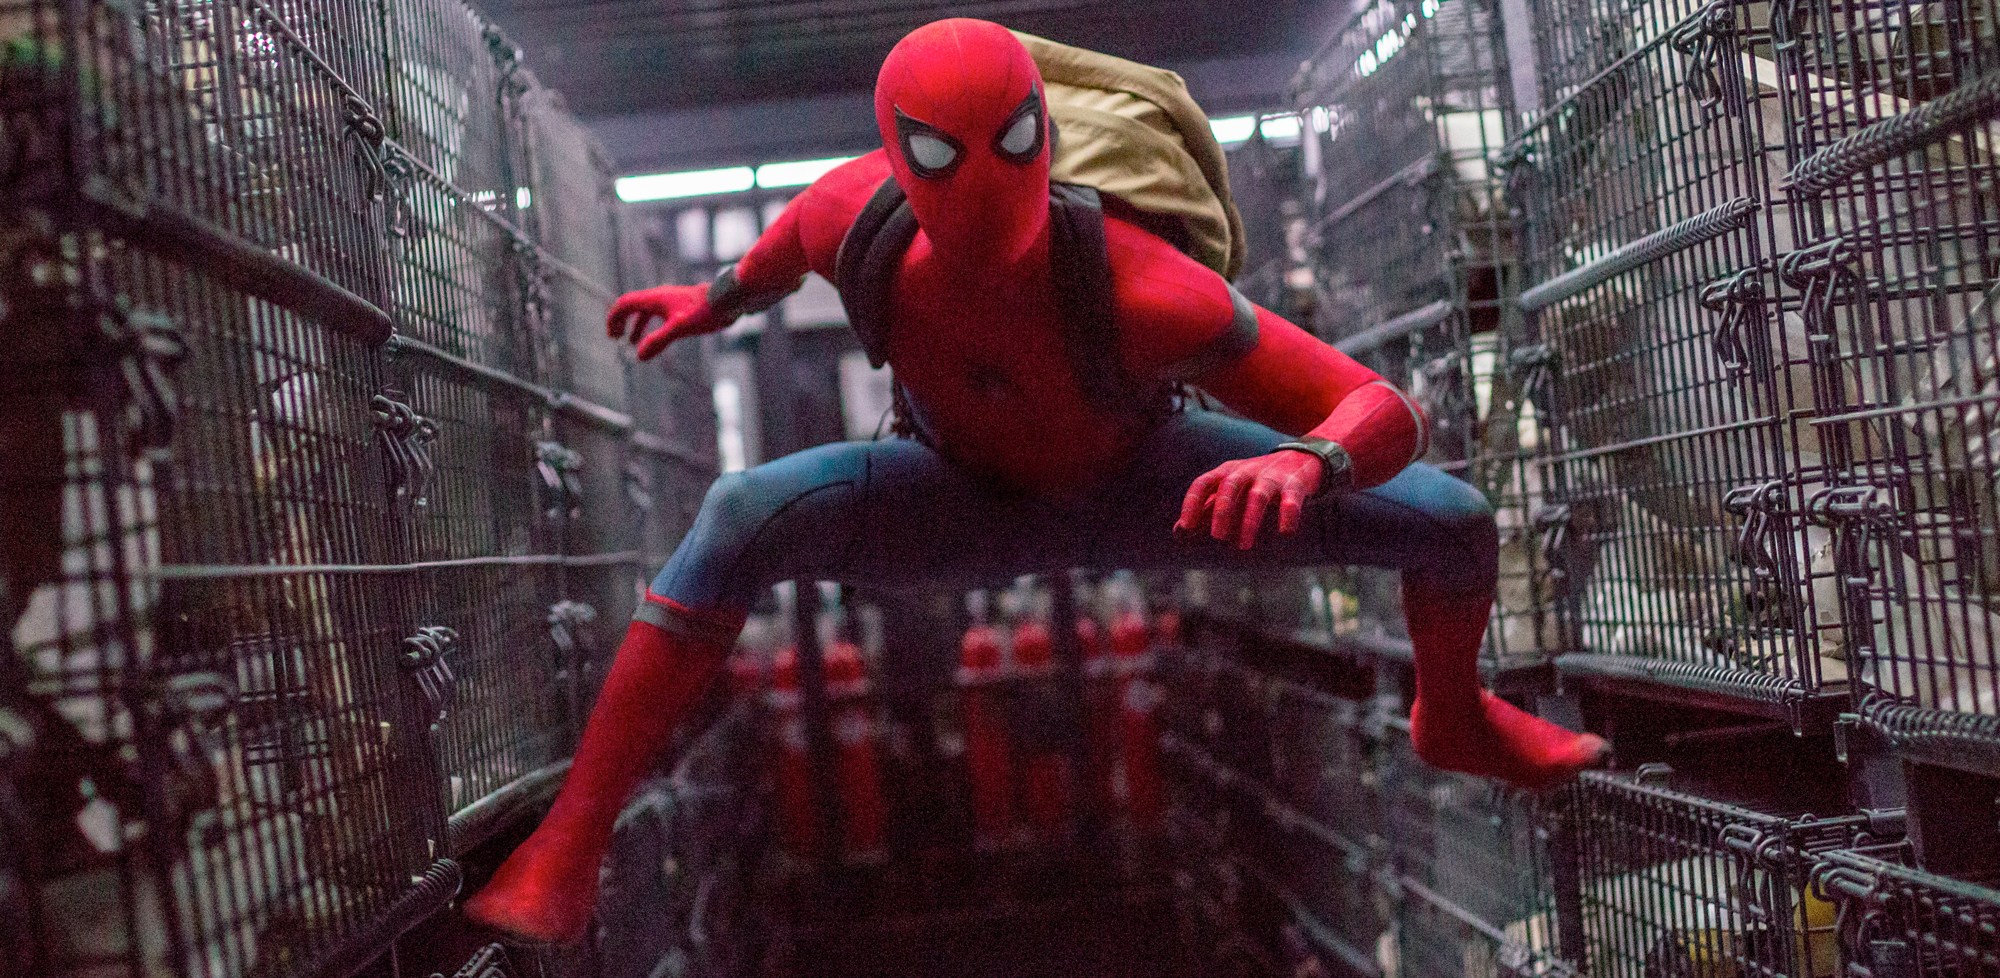 Spider-Man: Far From Home Homecoming Spider-Suit